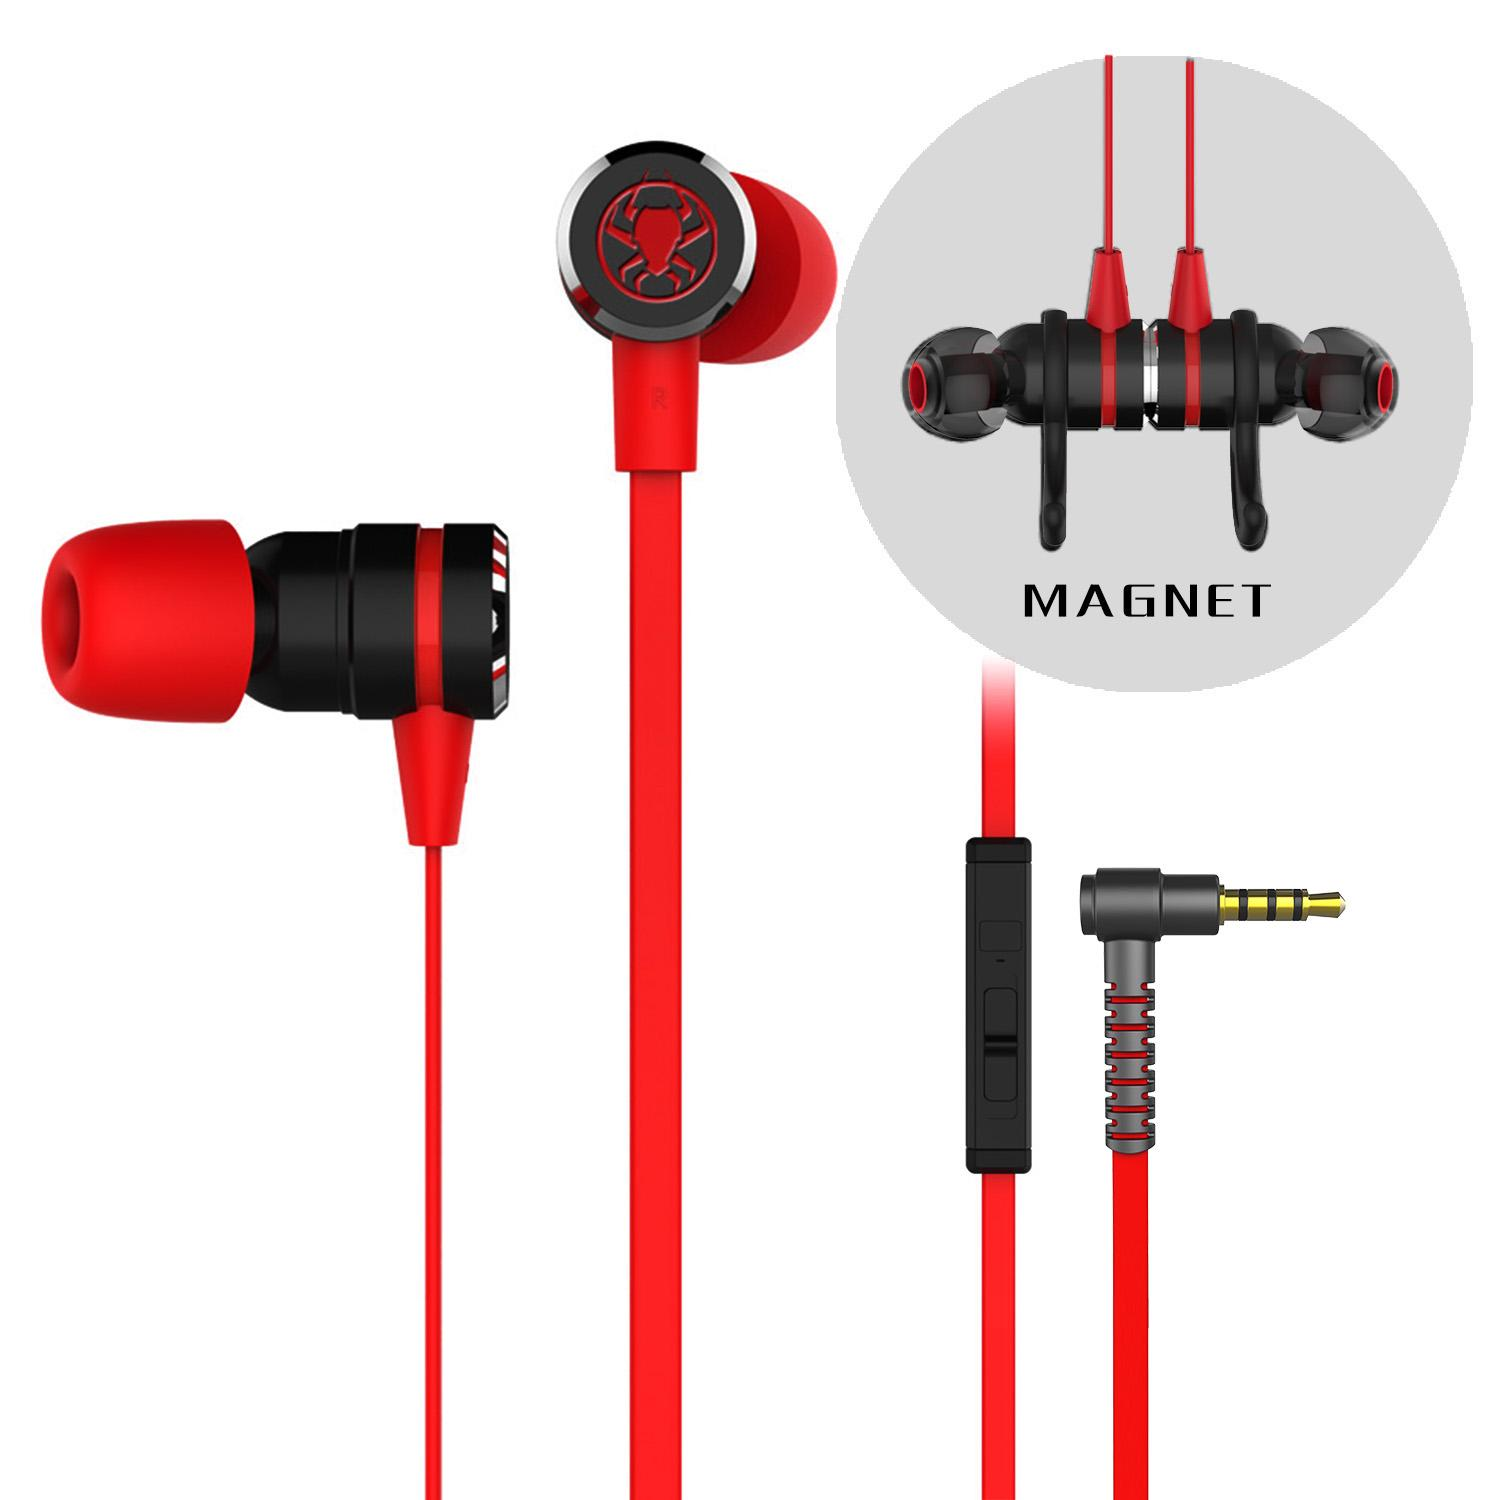 【Local Seller】PLEXTONE G20 Noise Reduction 3.5mm Gaming Headset With Microphone In-ear Wired Magnetic Stereo With Mic